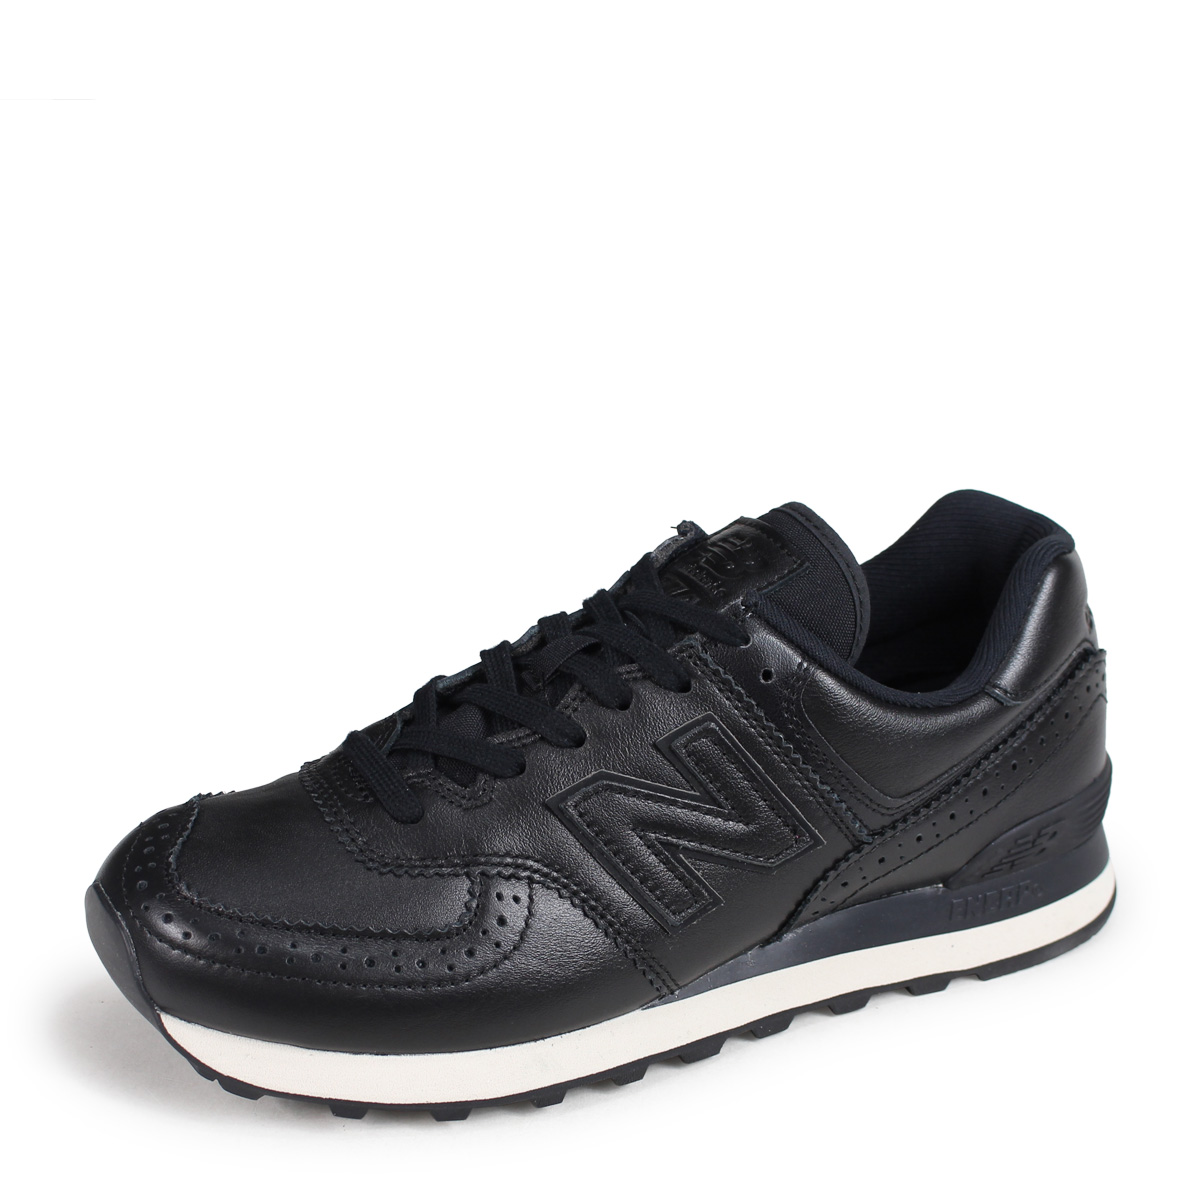 new balance New Balance 574 men's sneakers ML574LEK D Wise black [1026 Shinnyu load] [1810]